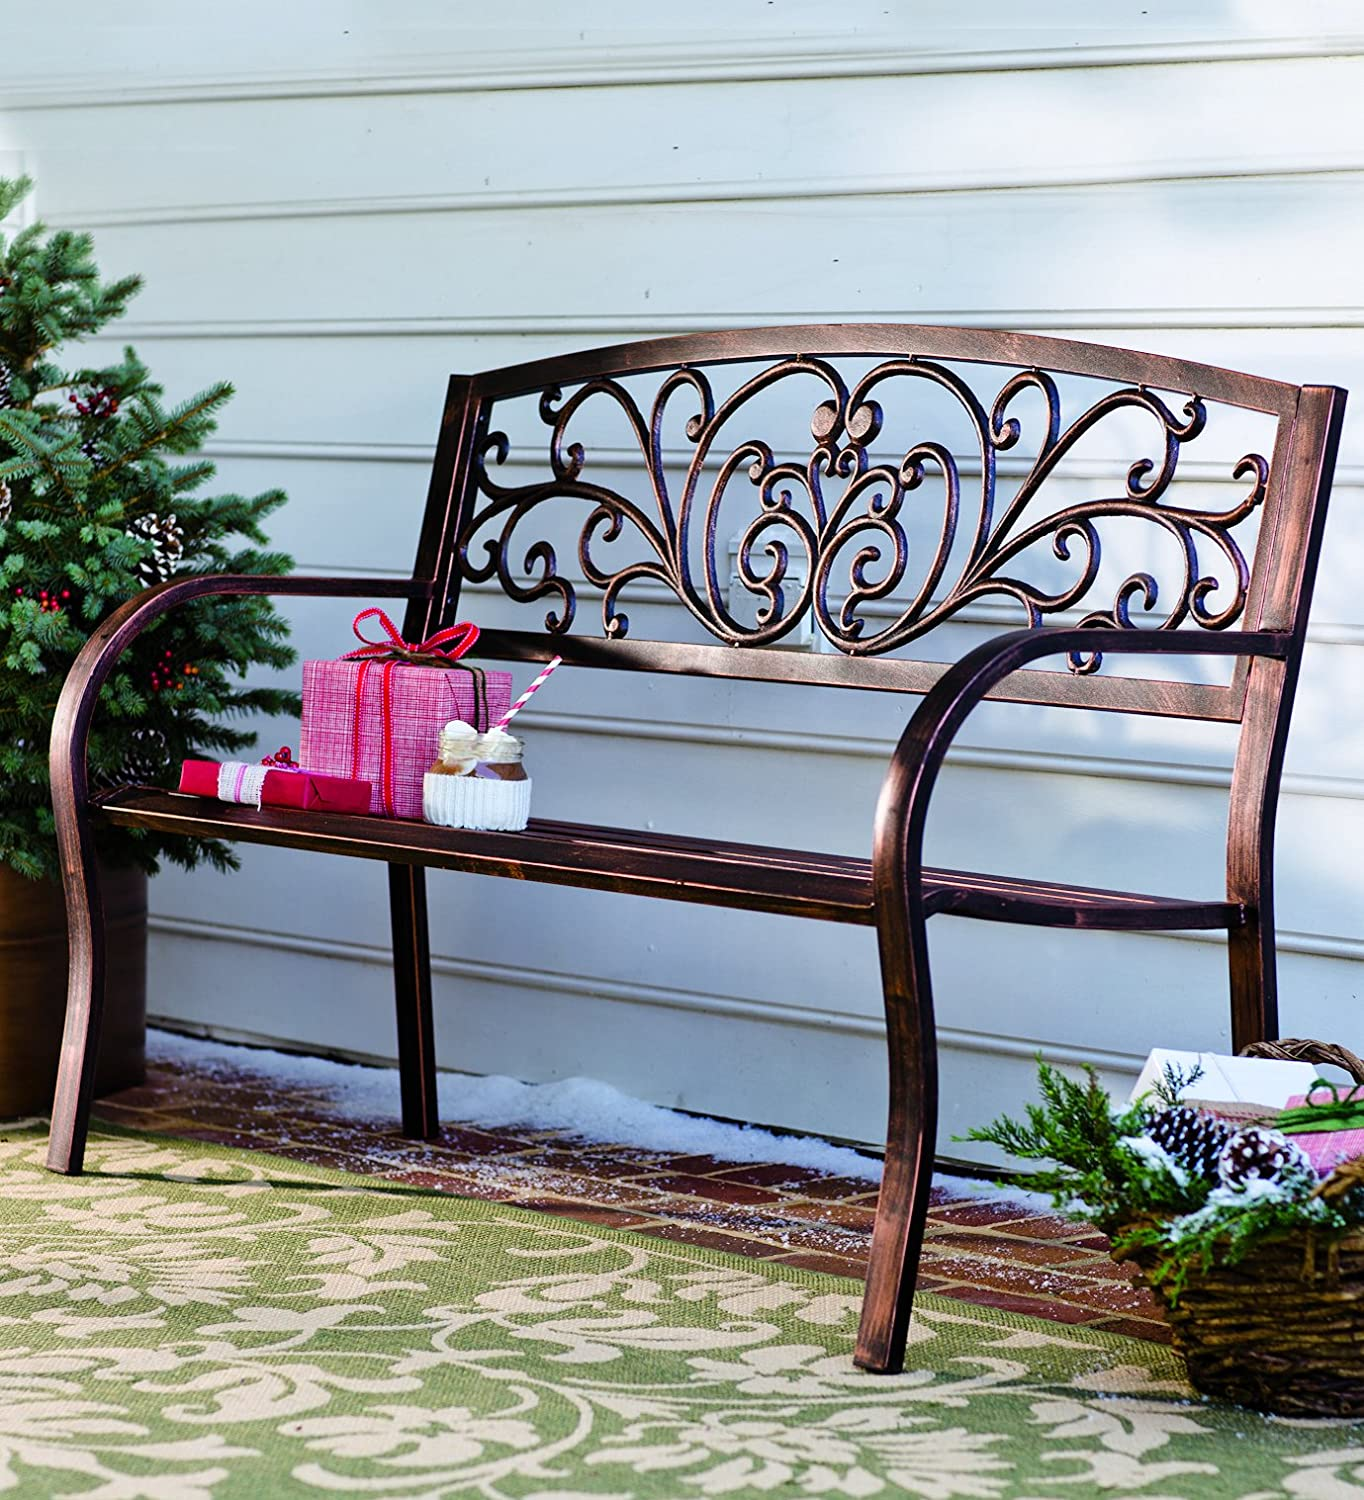 Amazon.com : Blooming Patio Garden Bench Park Yard Outdoor Furniture ...